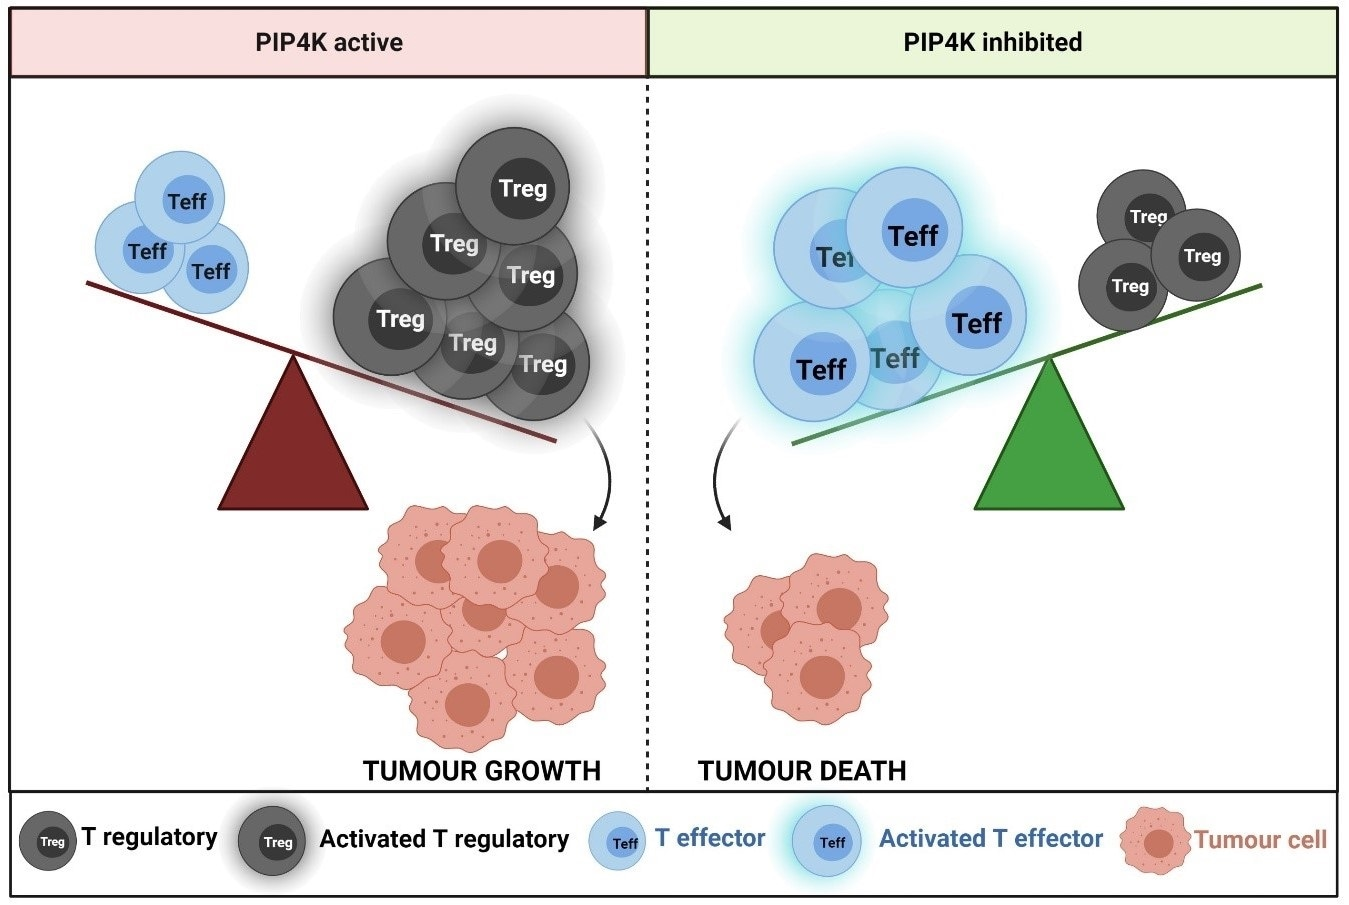 New advancement could improve immune system's ability to search, destroy tumor